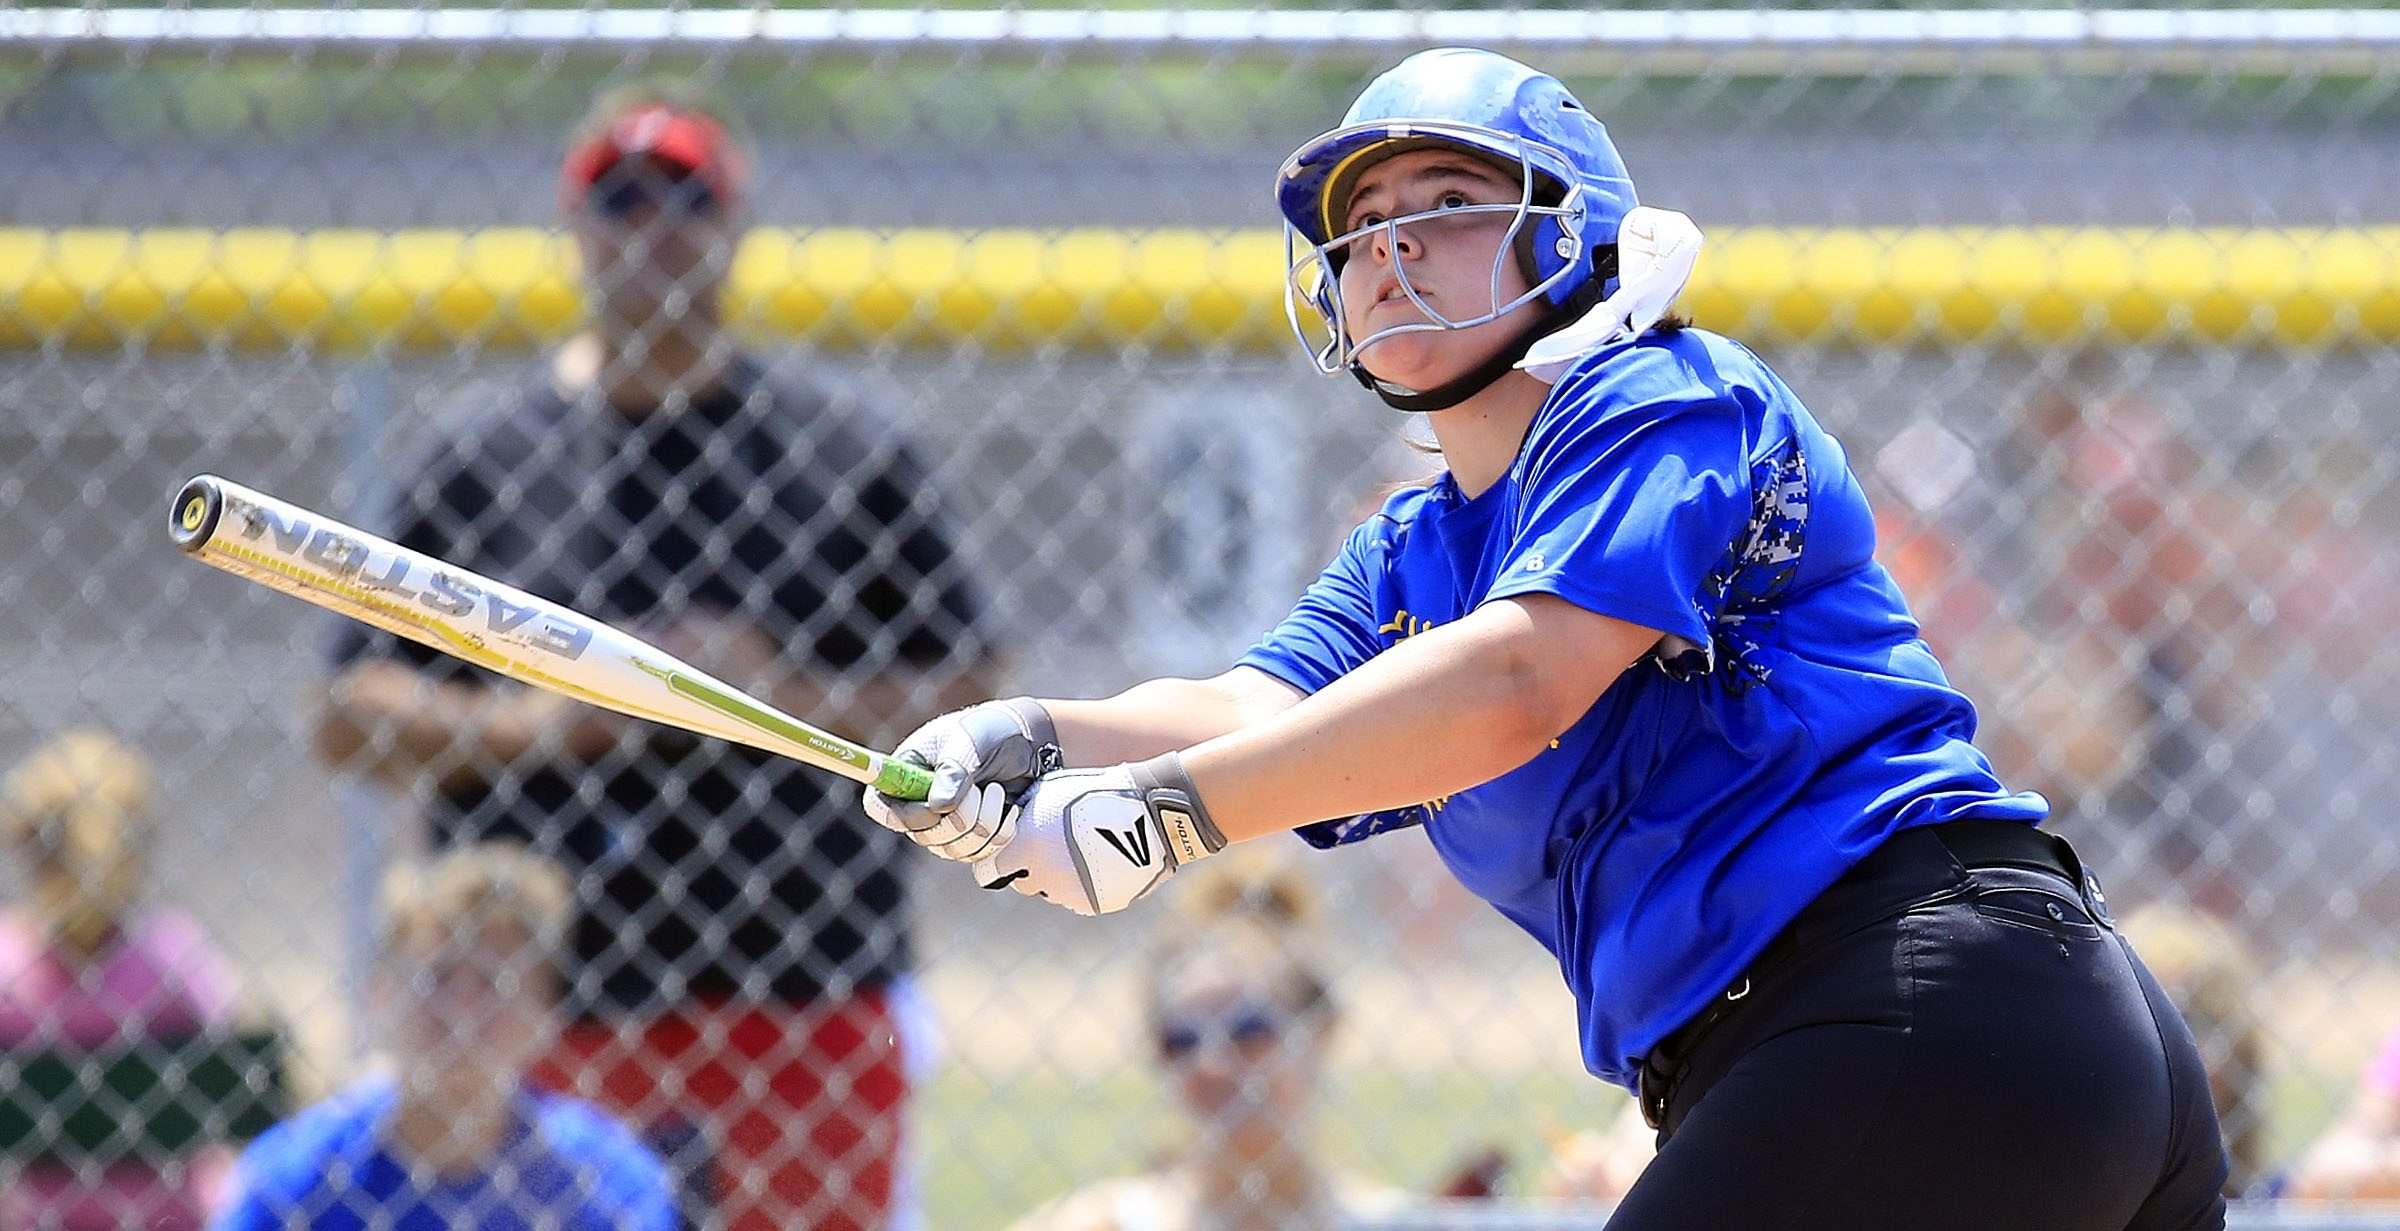 Alden's Laura Kratzke hits a solo home run against Fredonia during the Section VI softball finals at Niagara Wheatfield High School last May.